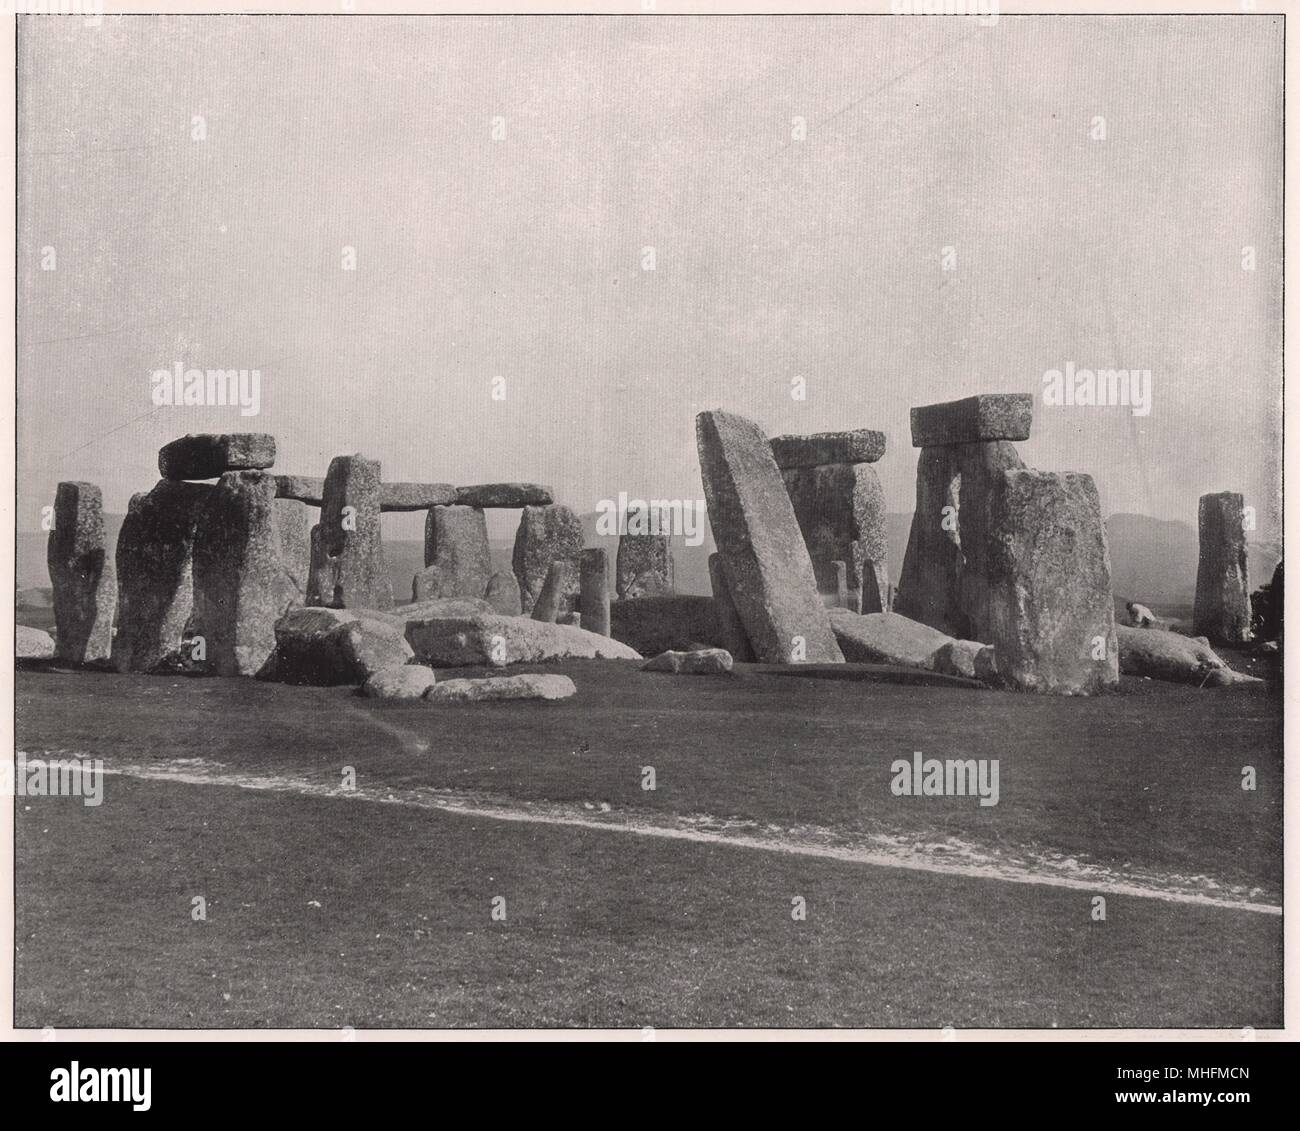 Stonehenge, that wonderful monument of ancient times, about which so much has been said but so little is known, is situated on … - Stock Image